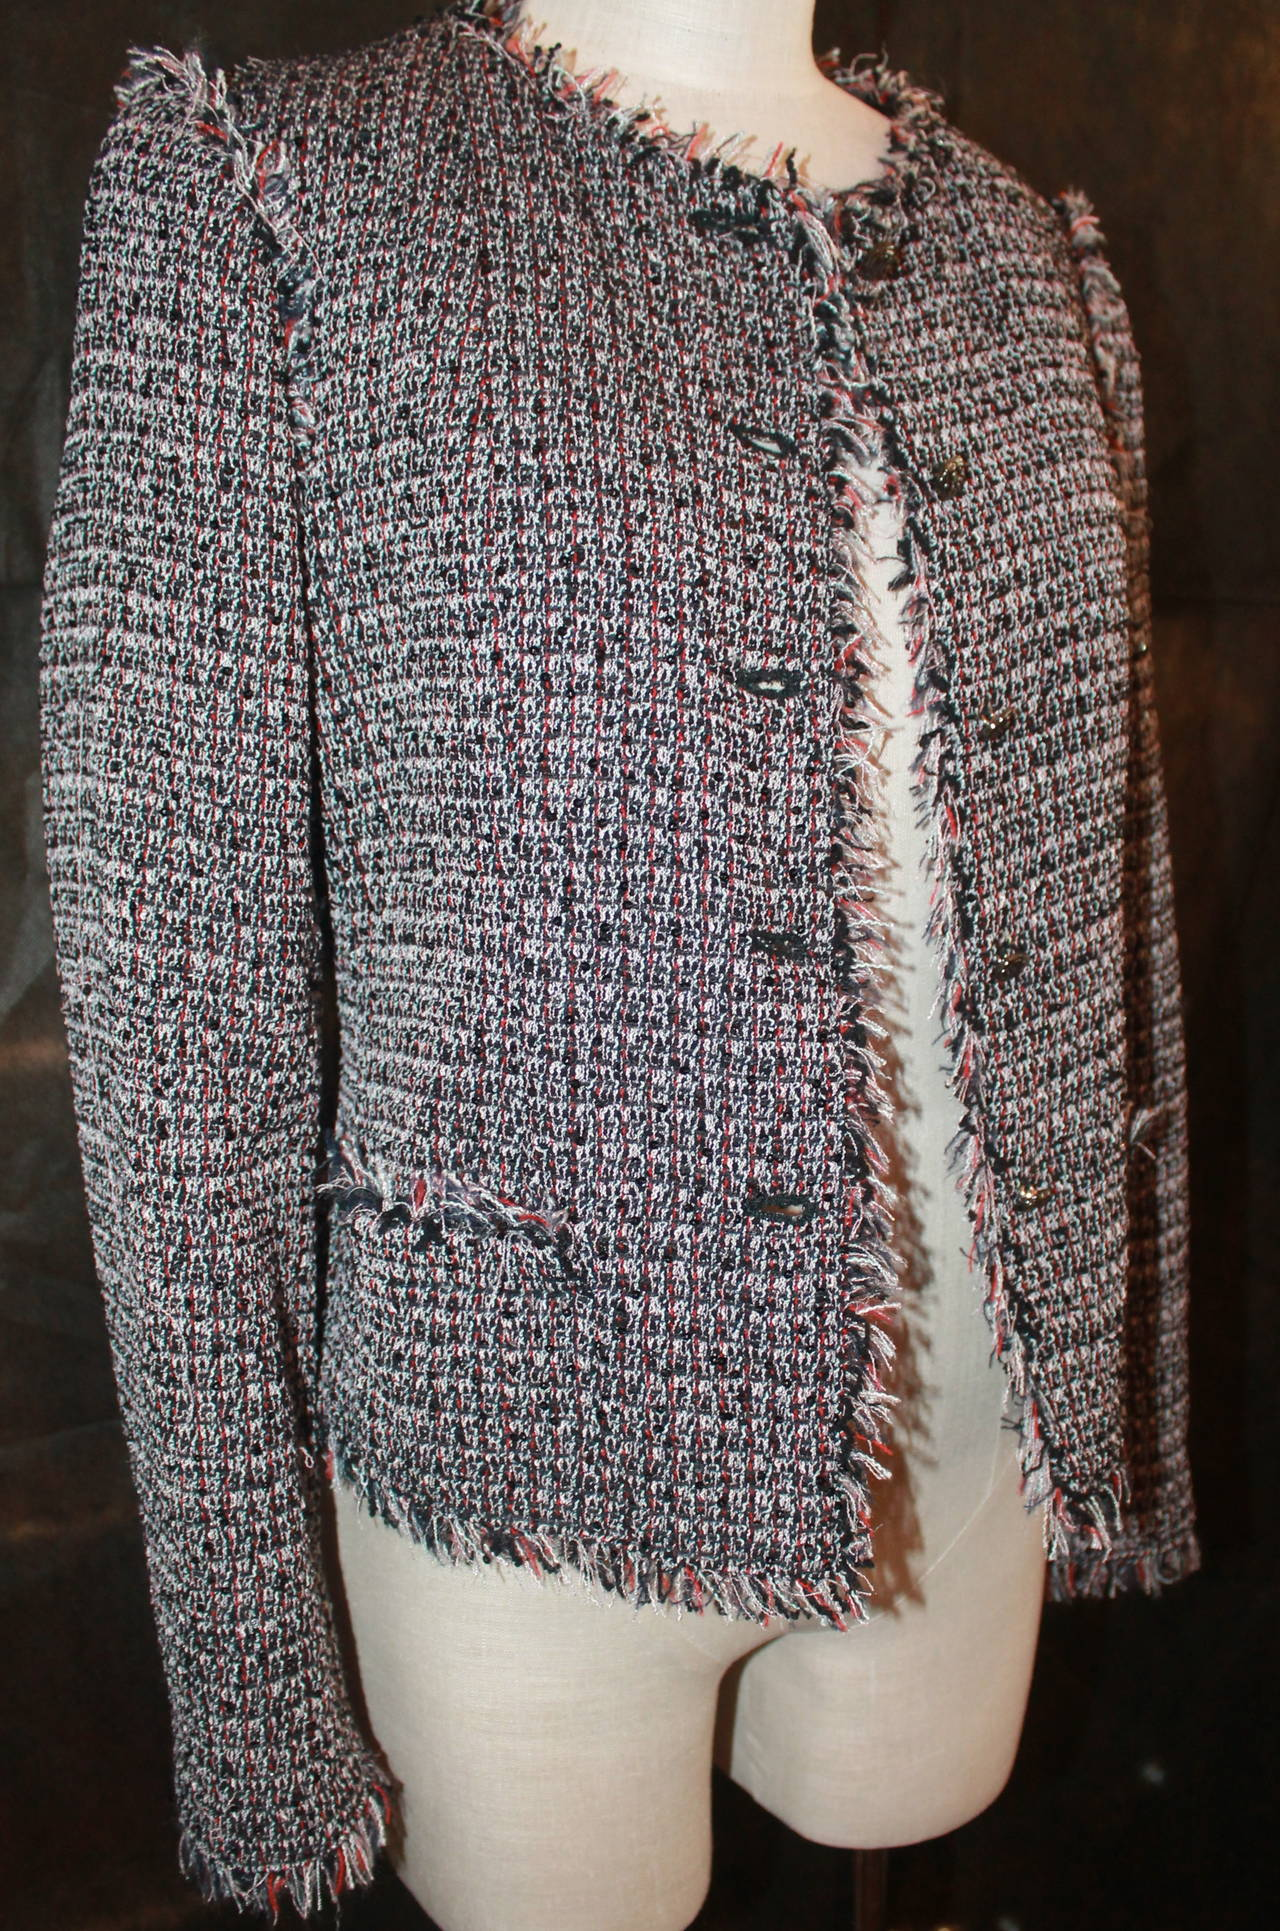 Chanel Black Red White Tweed Jacket With Fringe Trim